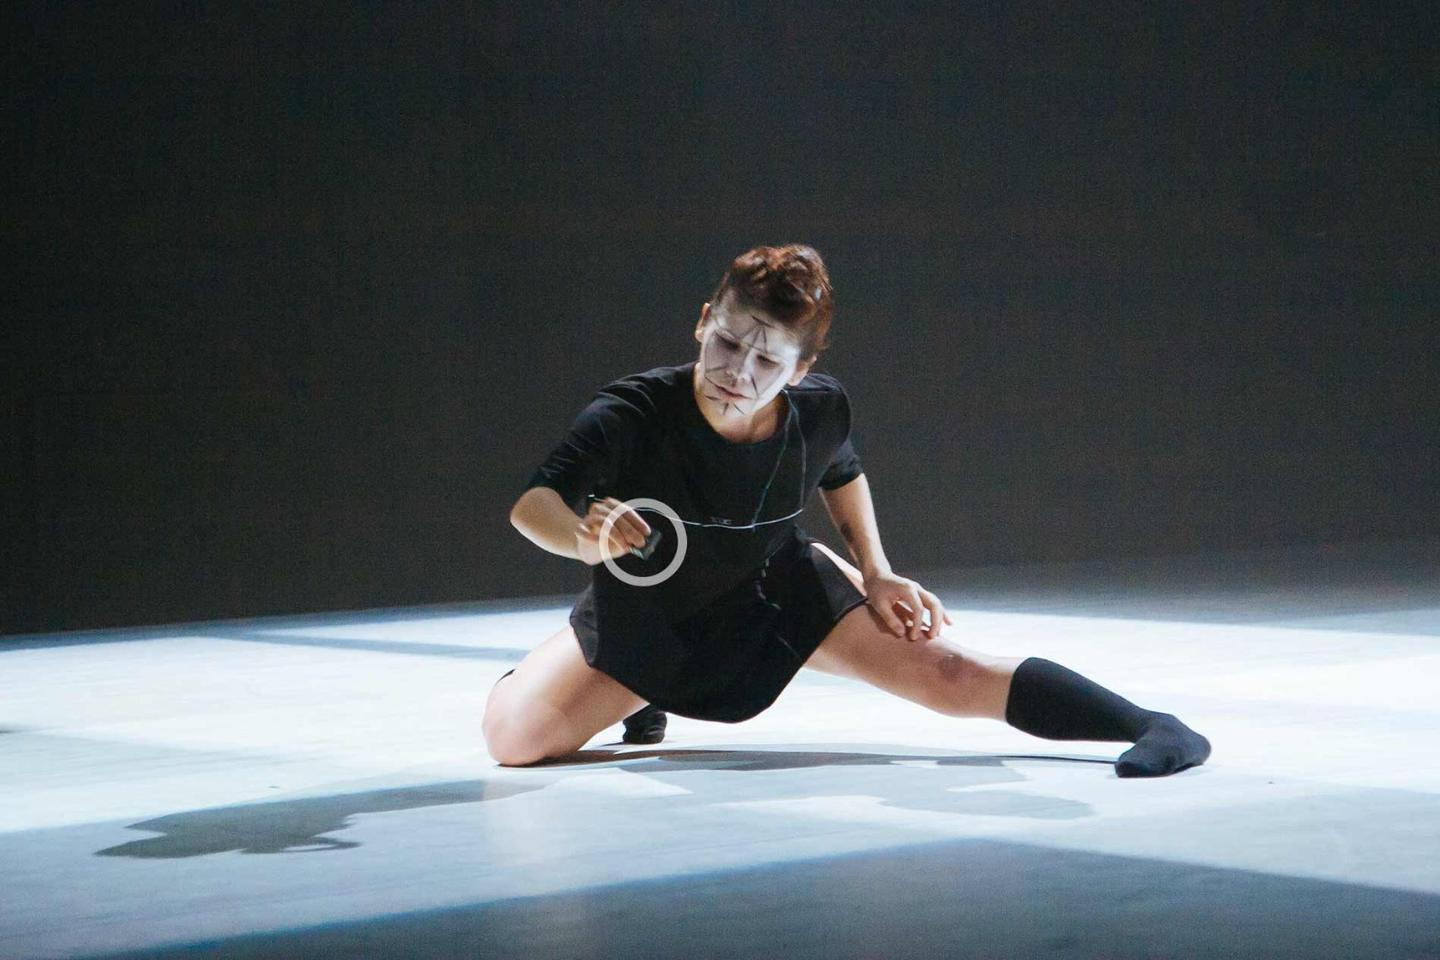 The Aura Dance Theatre has been using a Motus system prototype for the last two years